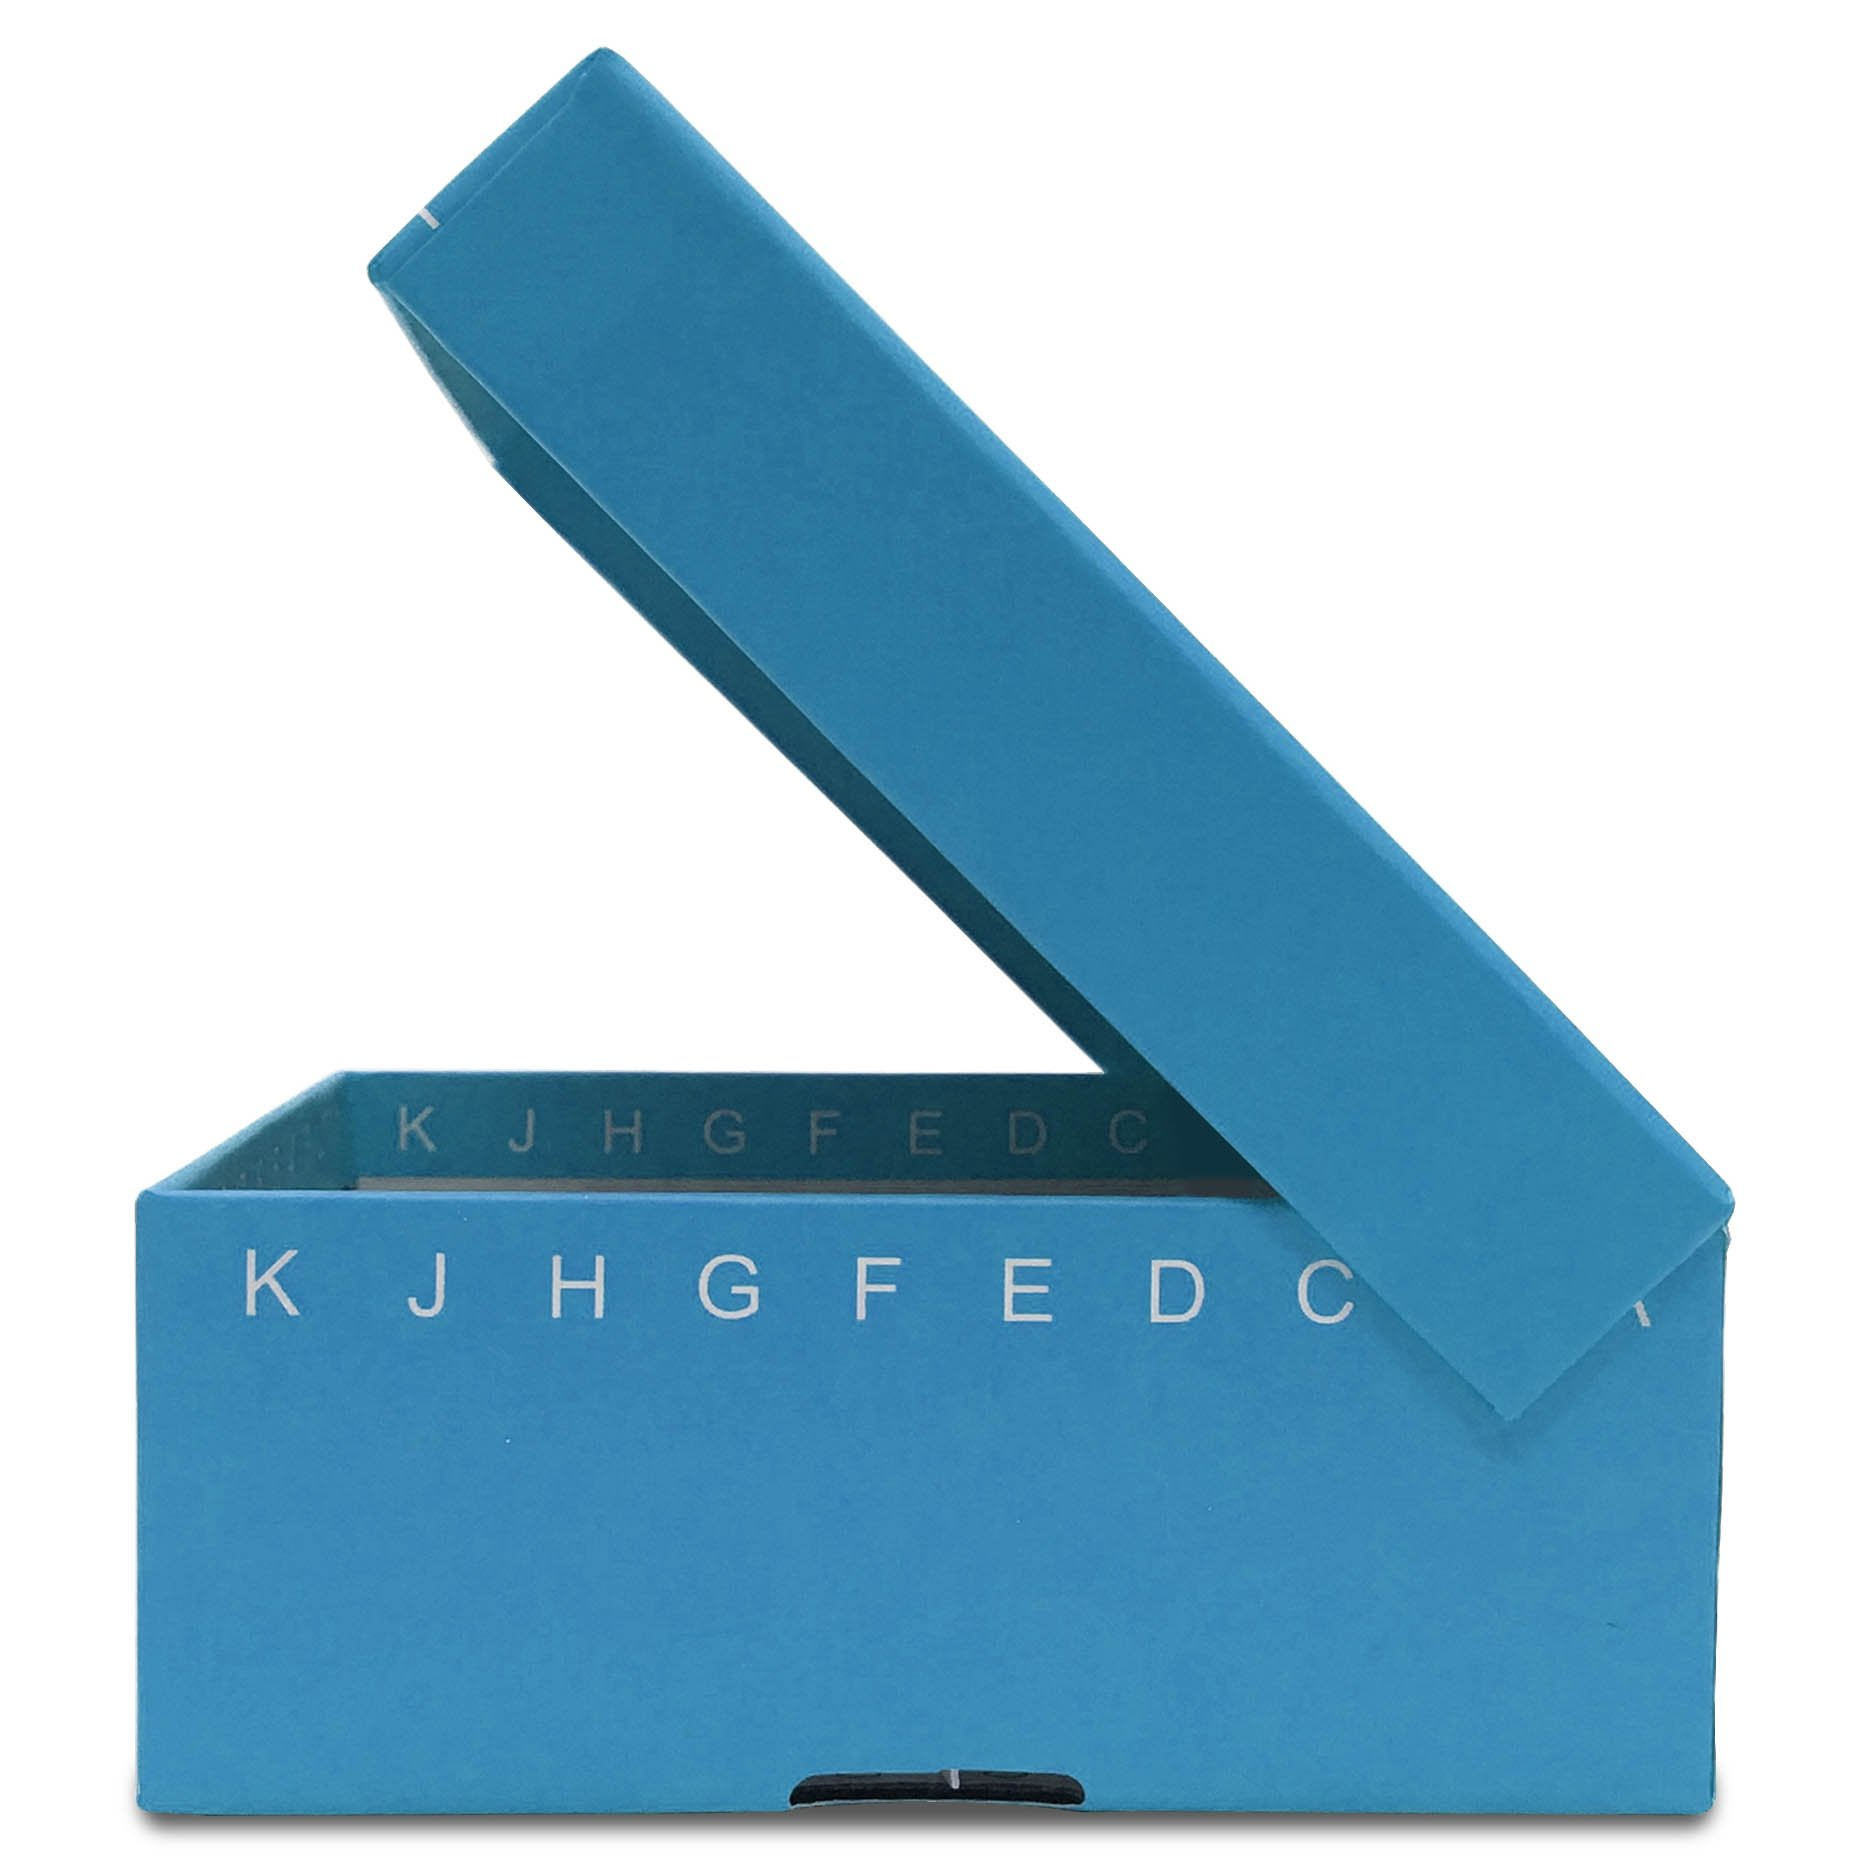 FlipTop Cardboard Freezer Box 100-Place with Attached Hinged Lid - Blue (Pack of 5)